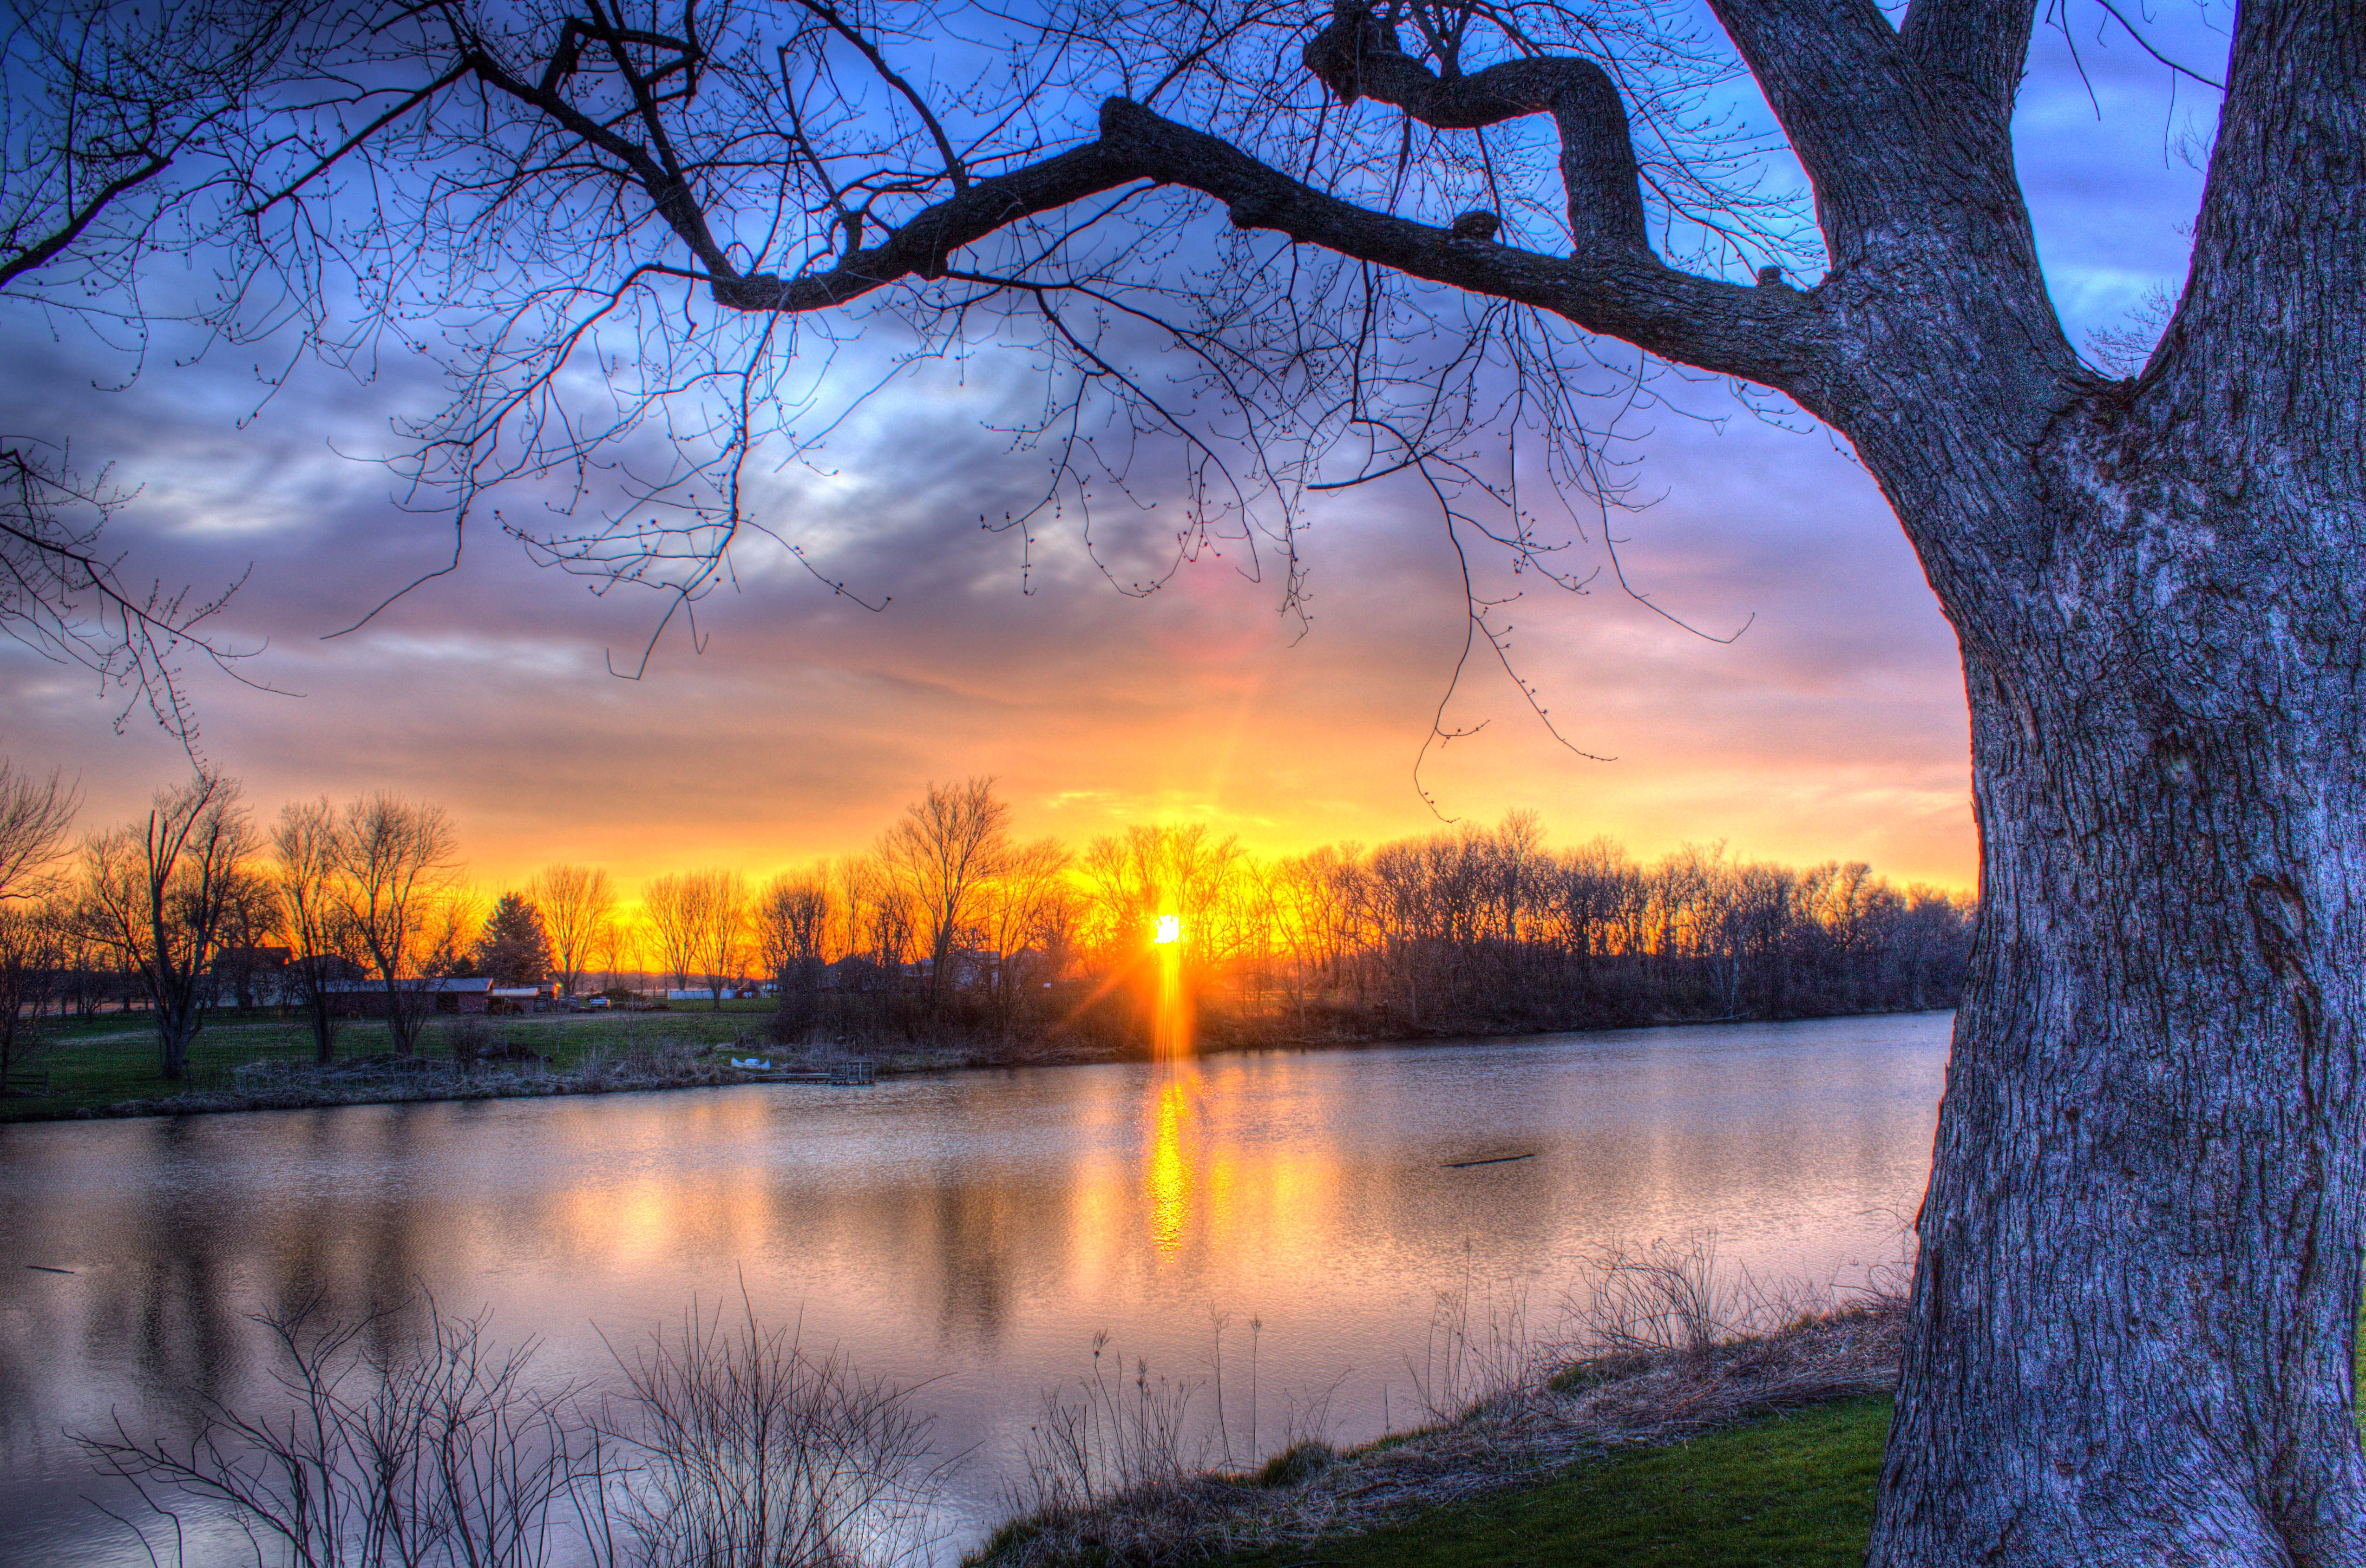 sunset-at-beckman-mill-with-pond-in-the-landscape-in-wisconsin